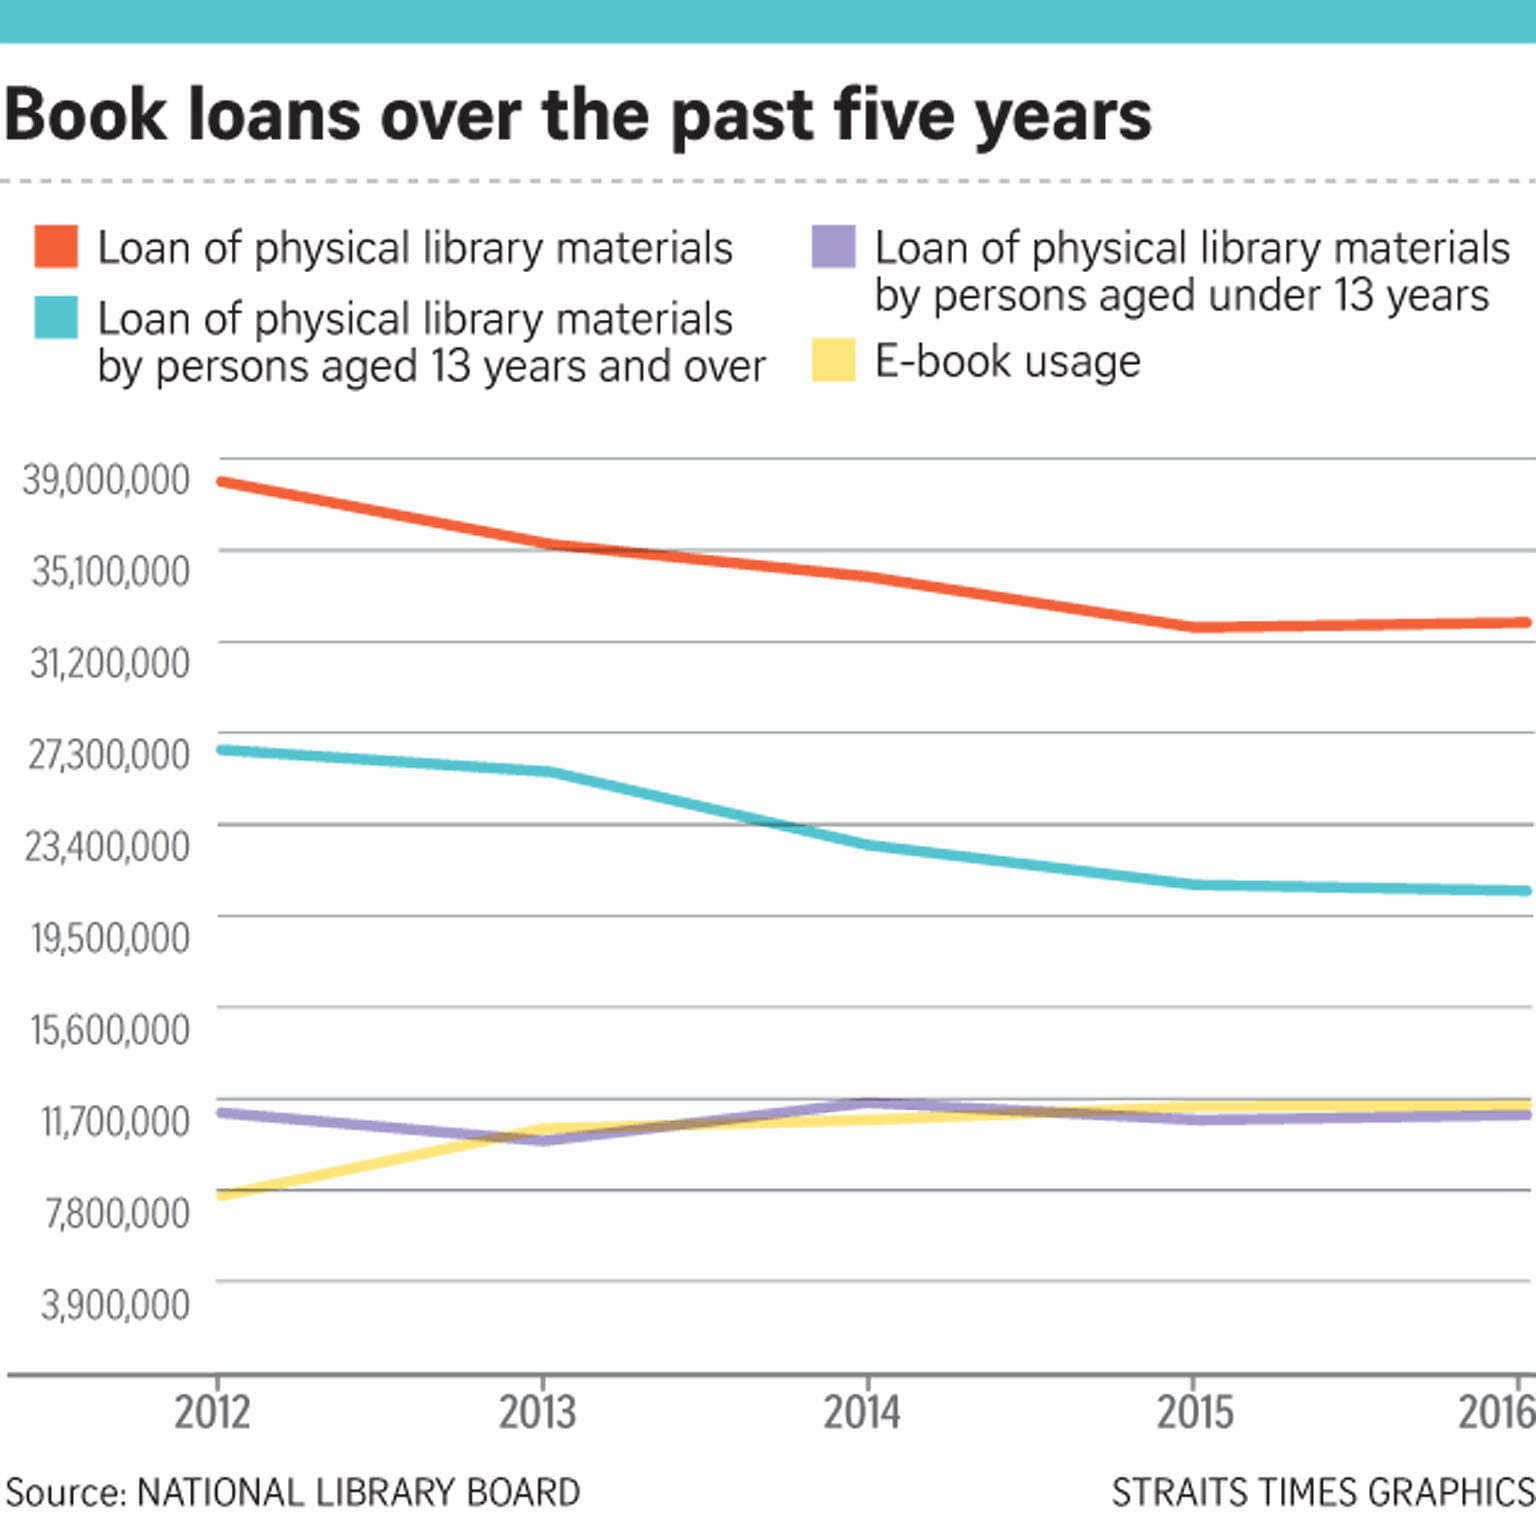 Physical library loans fall as e-books gain popularity